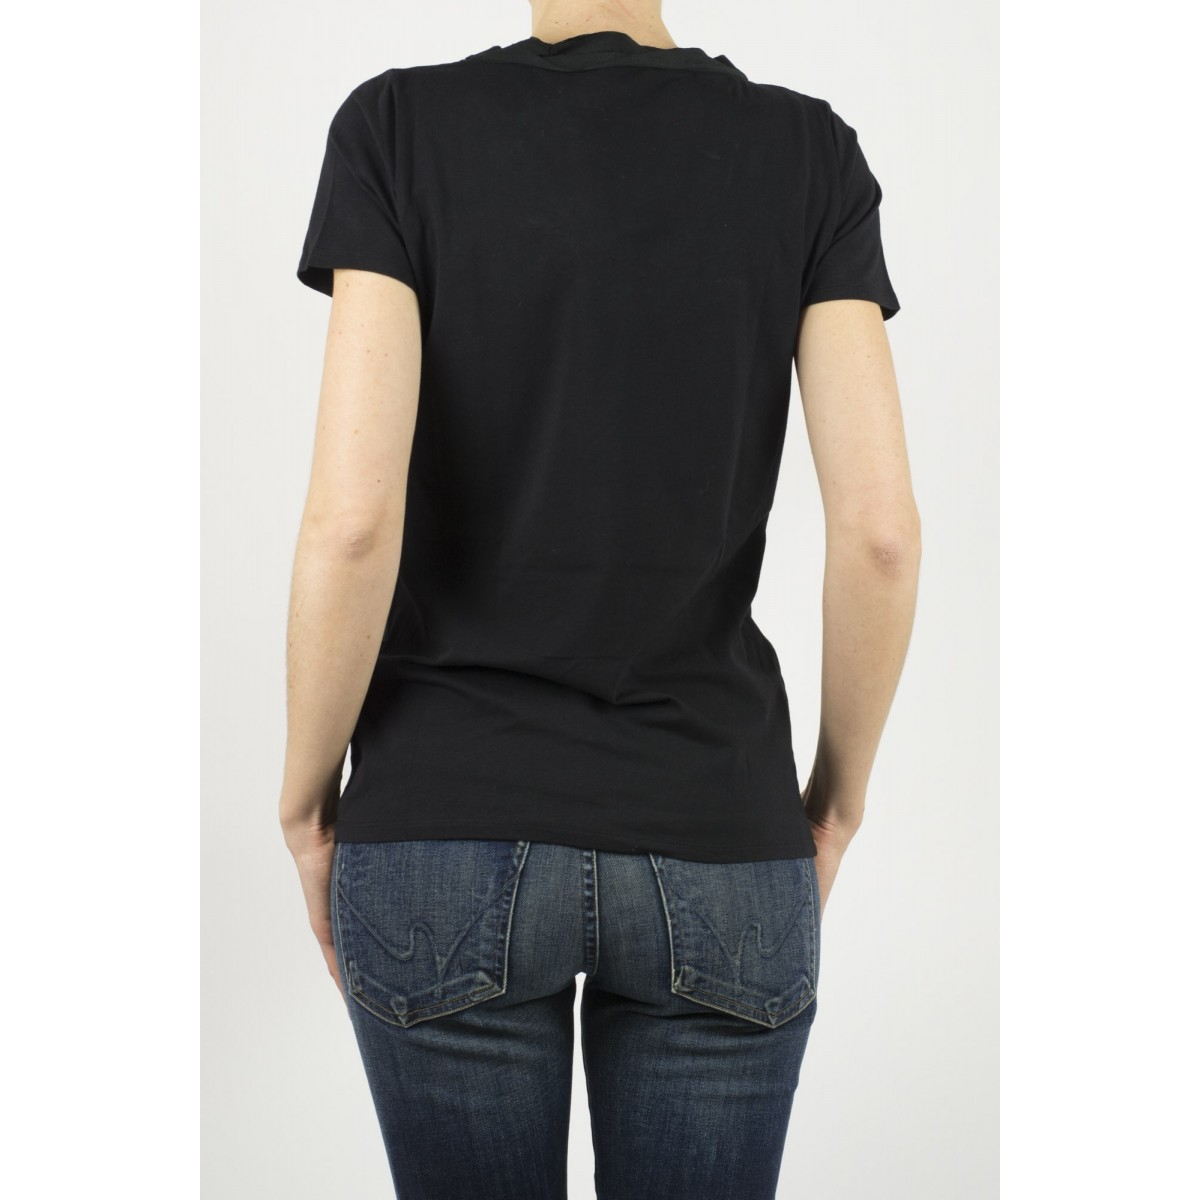 T-Shirt Woman Kangra - 6516/75 13 T-Shirt Woman